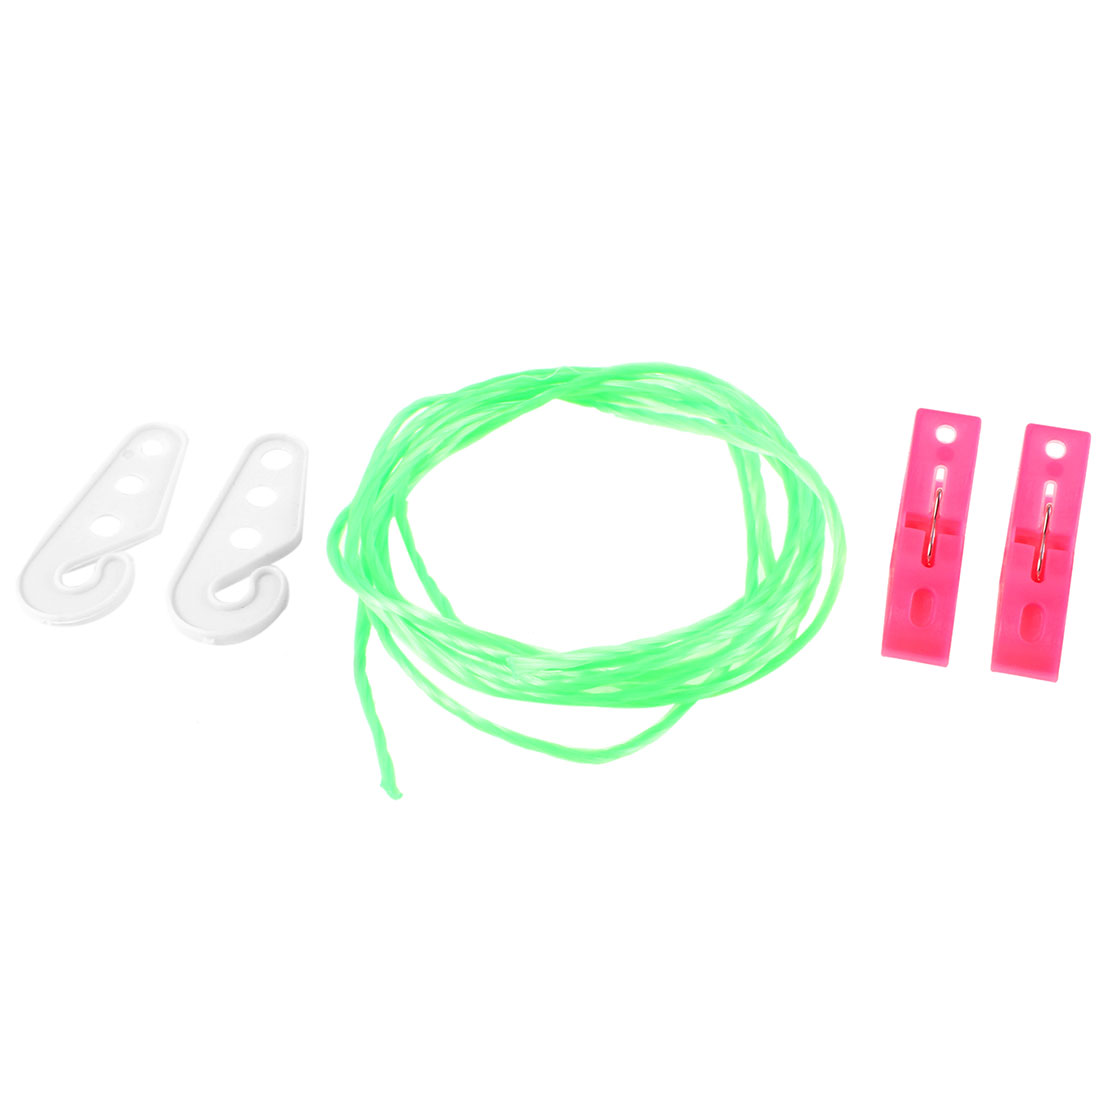 2M Long Green Twisted Nylon String ClothesLine w 2pcs Clothes Pegs Clips